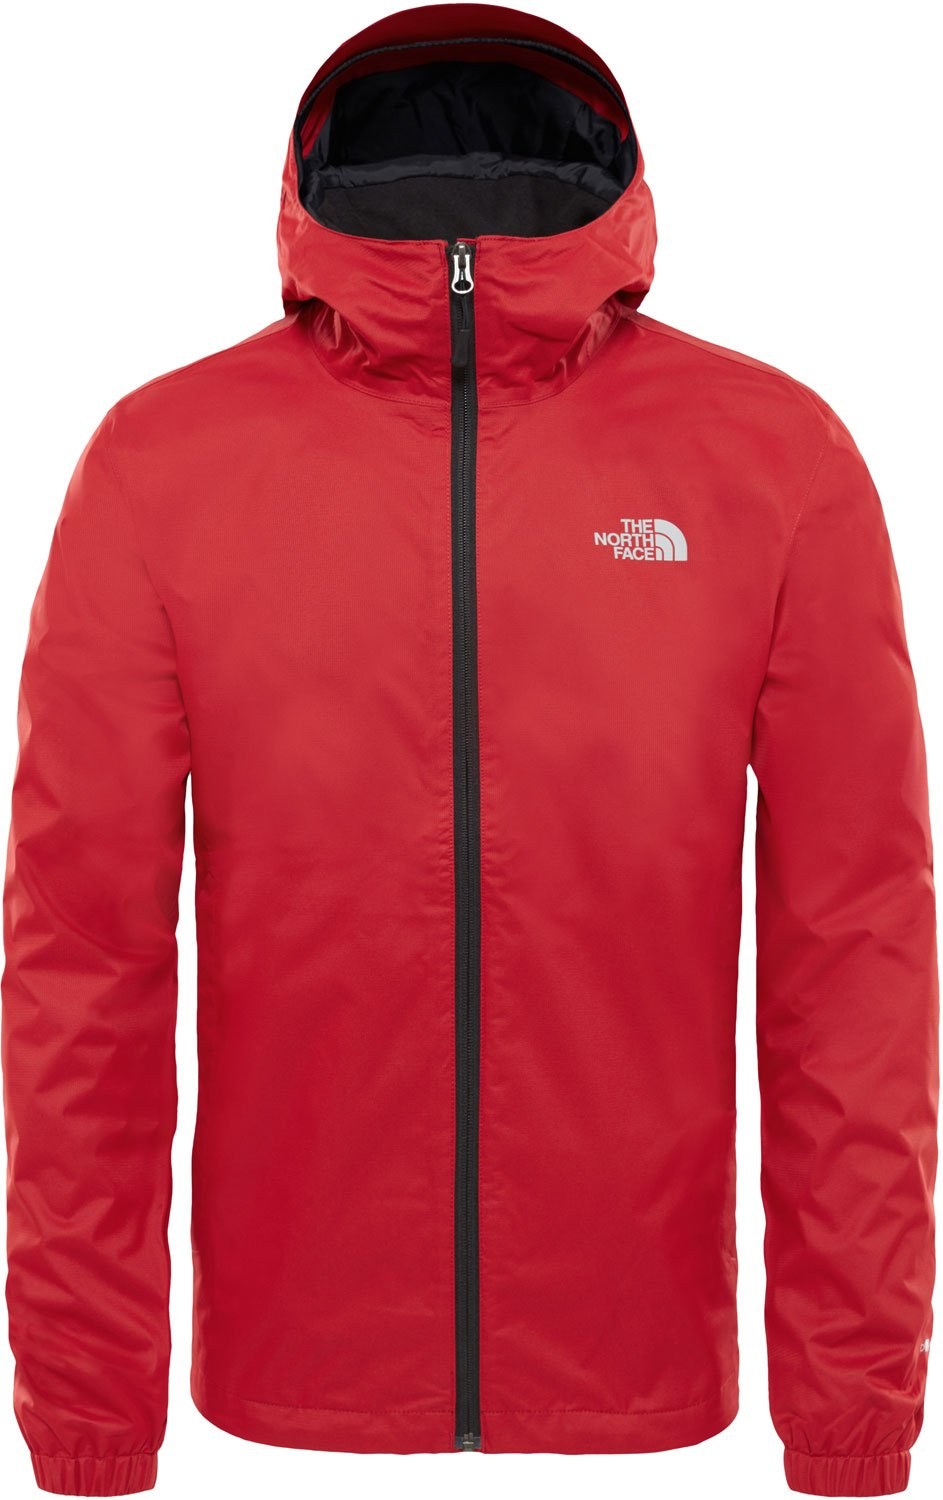 The North Face M Quest Jkt, Giacca a Vento Softshell Uomo T0A8AZPWB